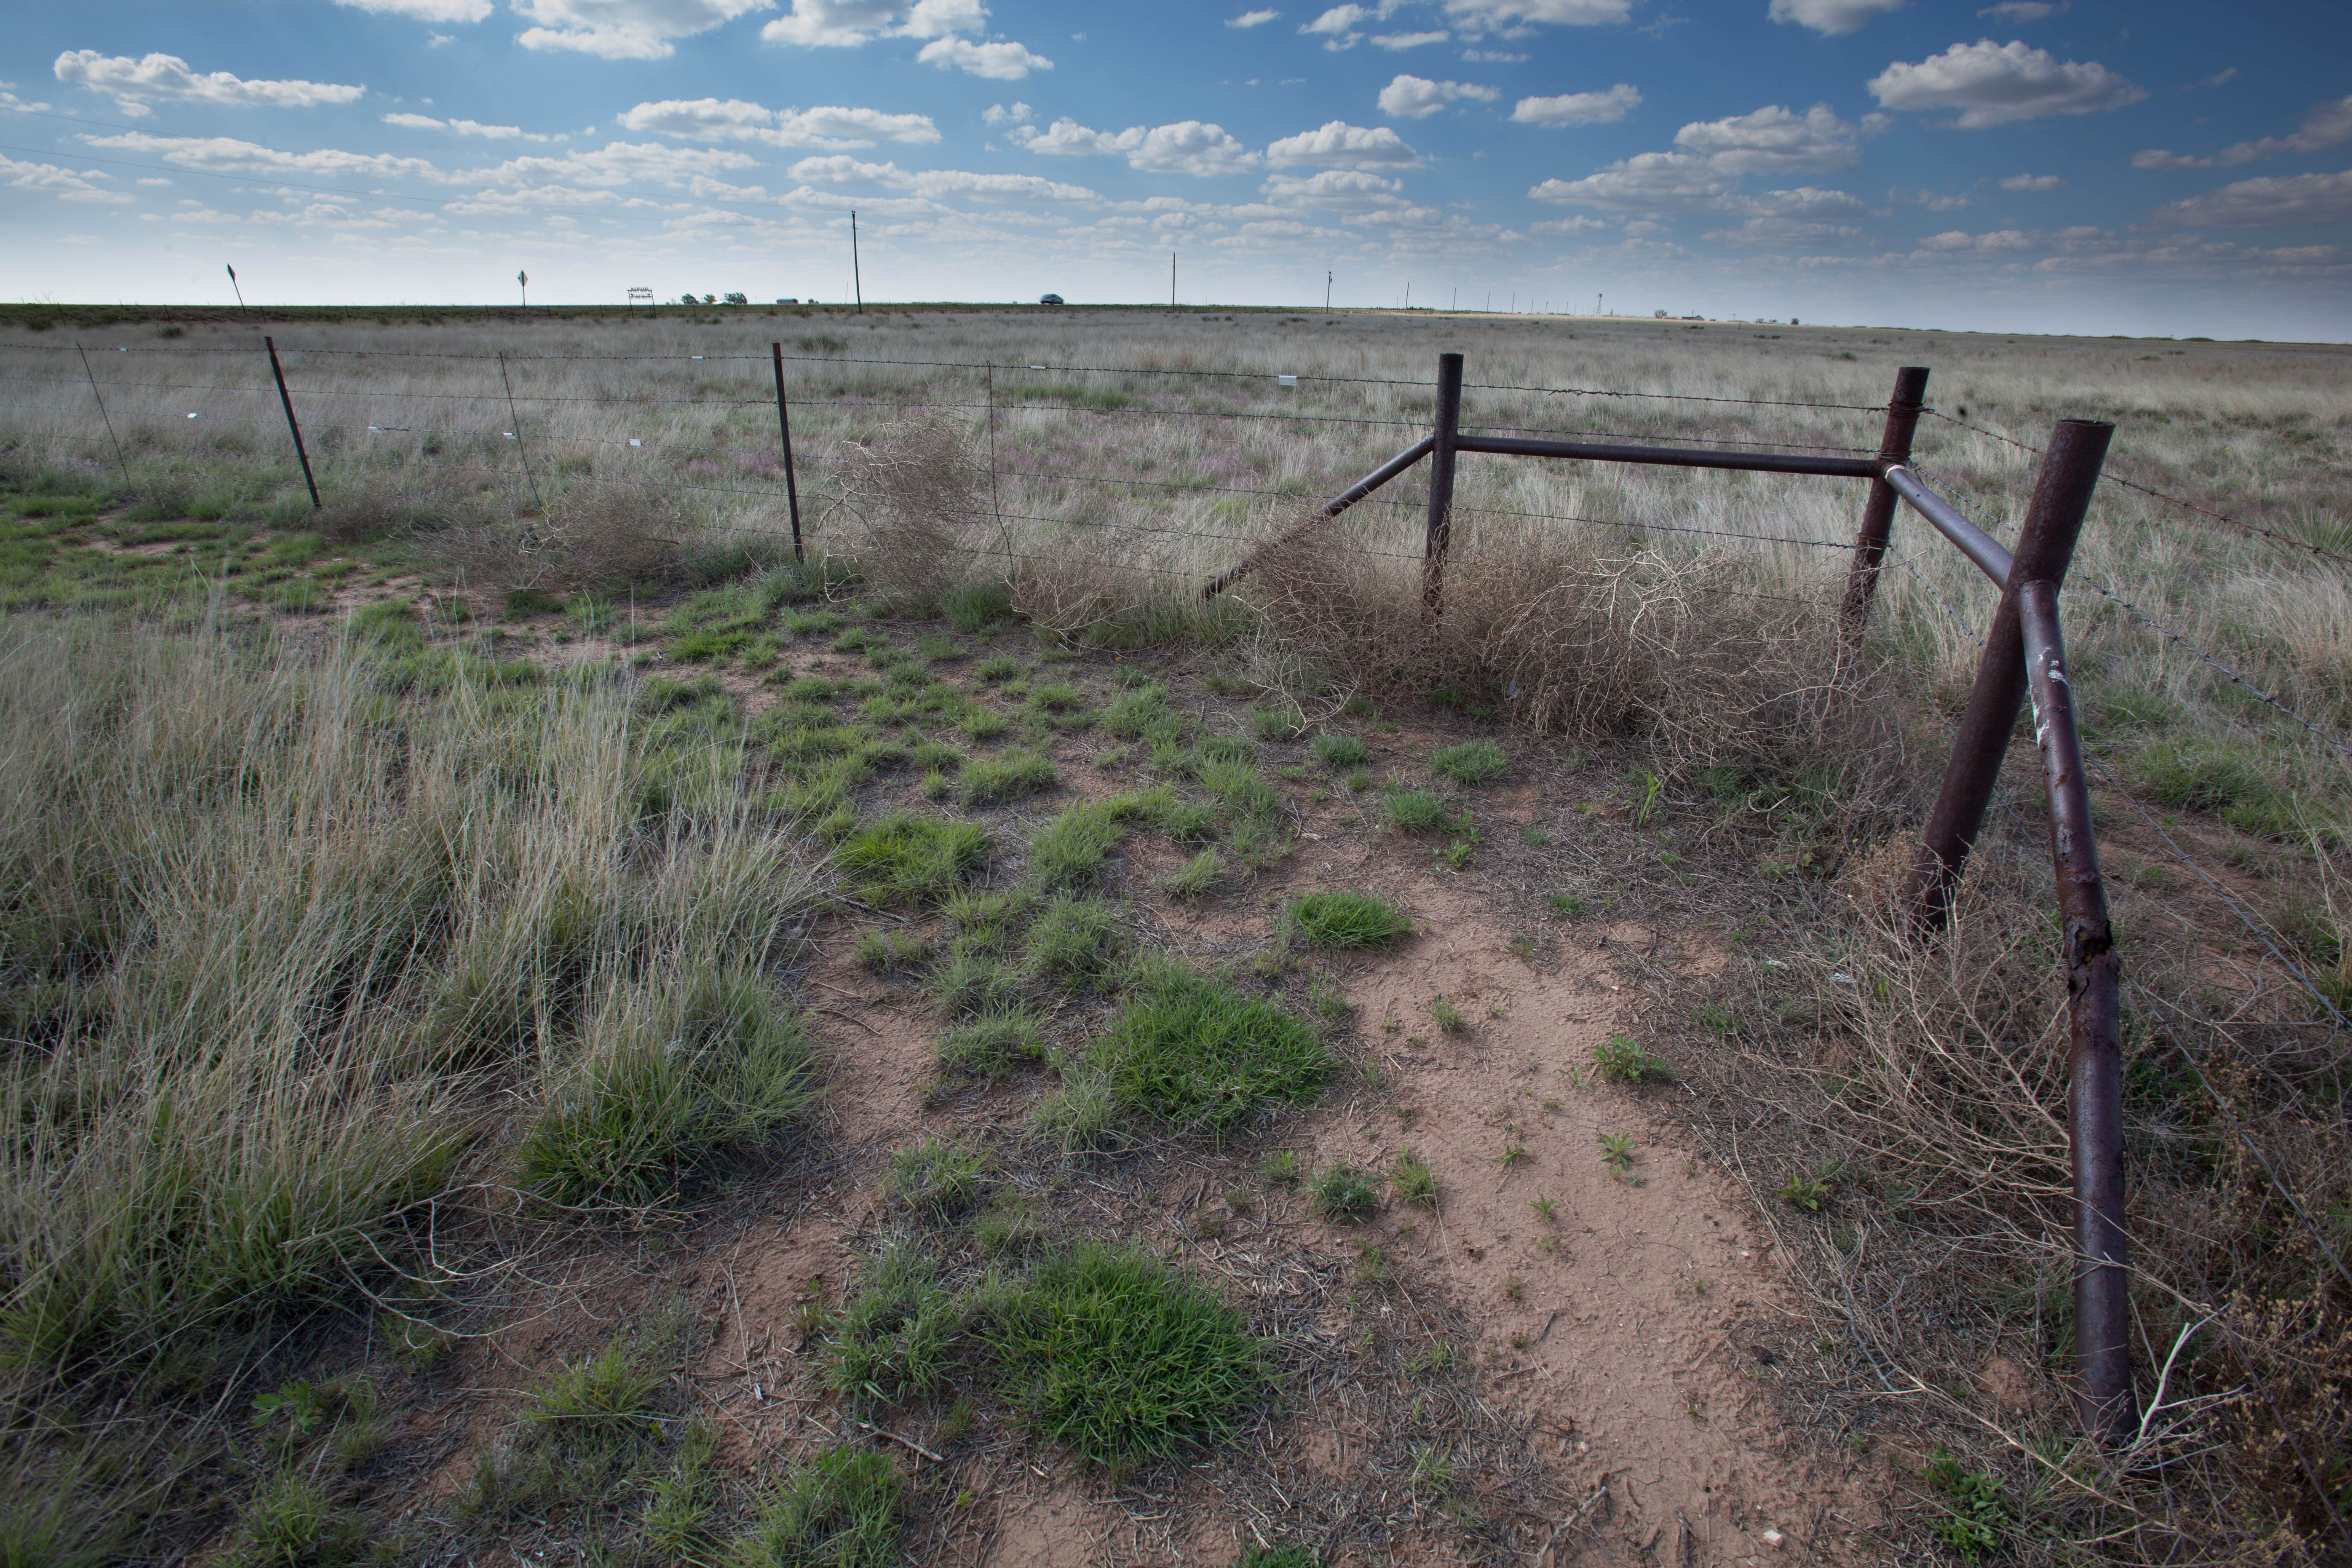 Free photograph; desert, fence, scenic, prairie, barbed, wire, sky, nature